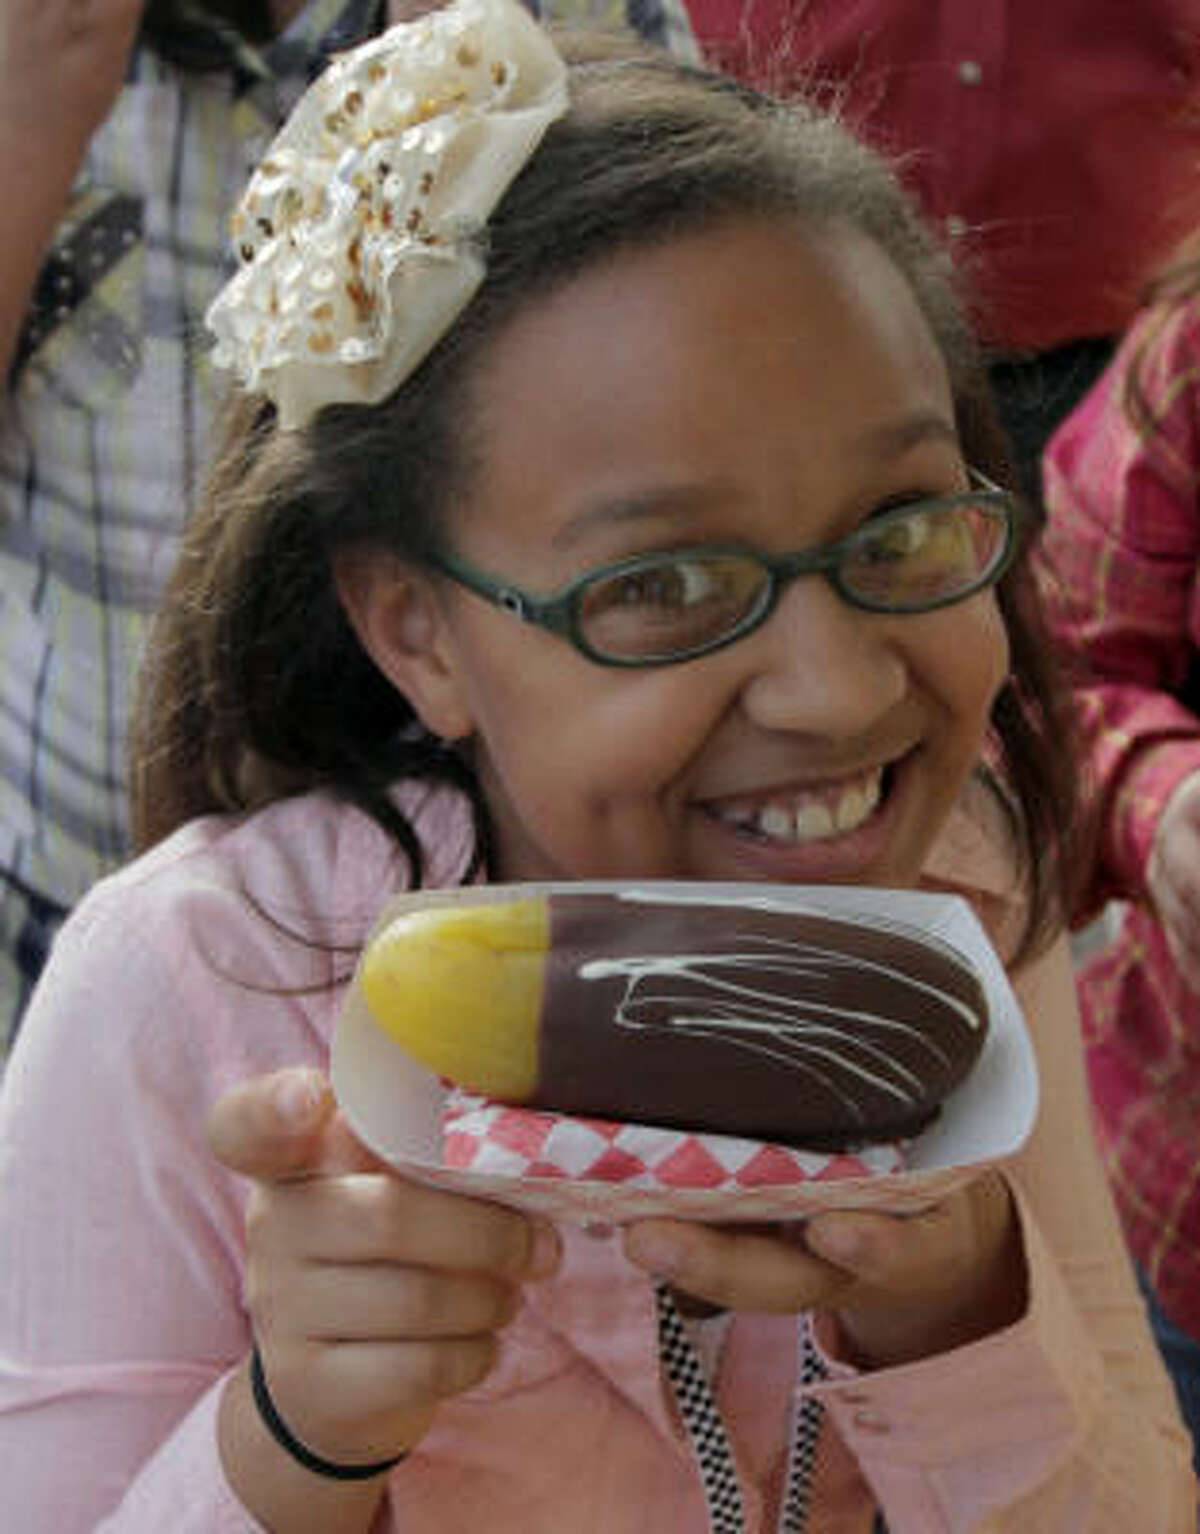 Ryan Llorens, 9, shows off her chocolate-covered pickle at the Houston Livestock Show and Rodeo.